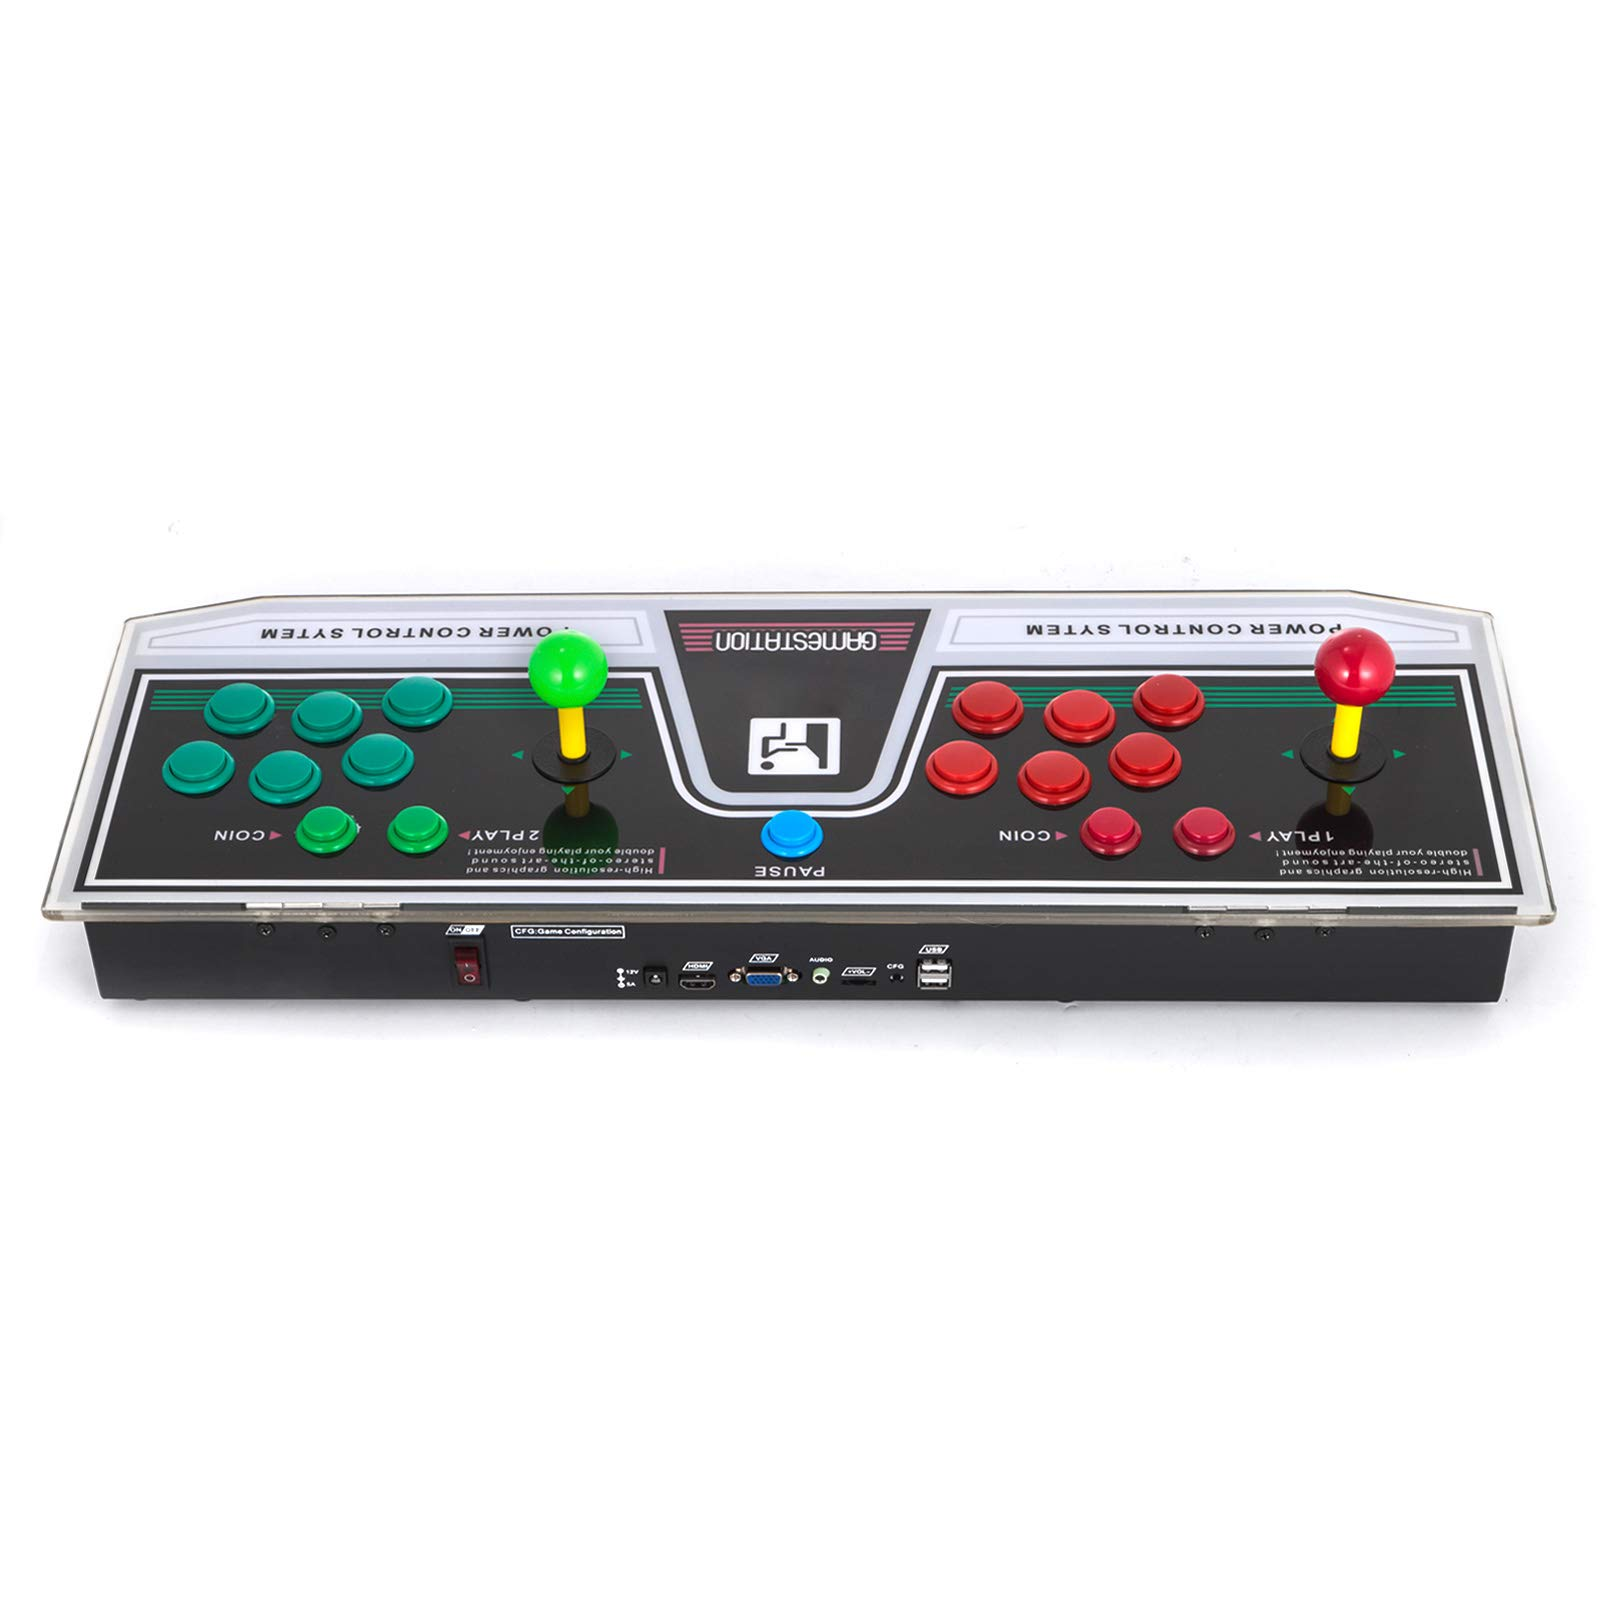 Happybuy Arcade Game Console 1280P Games 1500 in 1 Pandora's Box 2 Players Arcade Machine with Arcade Joystick Support Expand Games for PC / Laptop / TV / PS4 by Happybuy (Image #4)